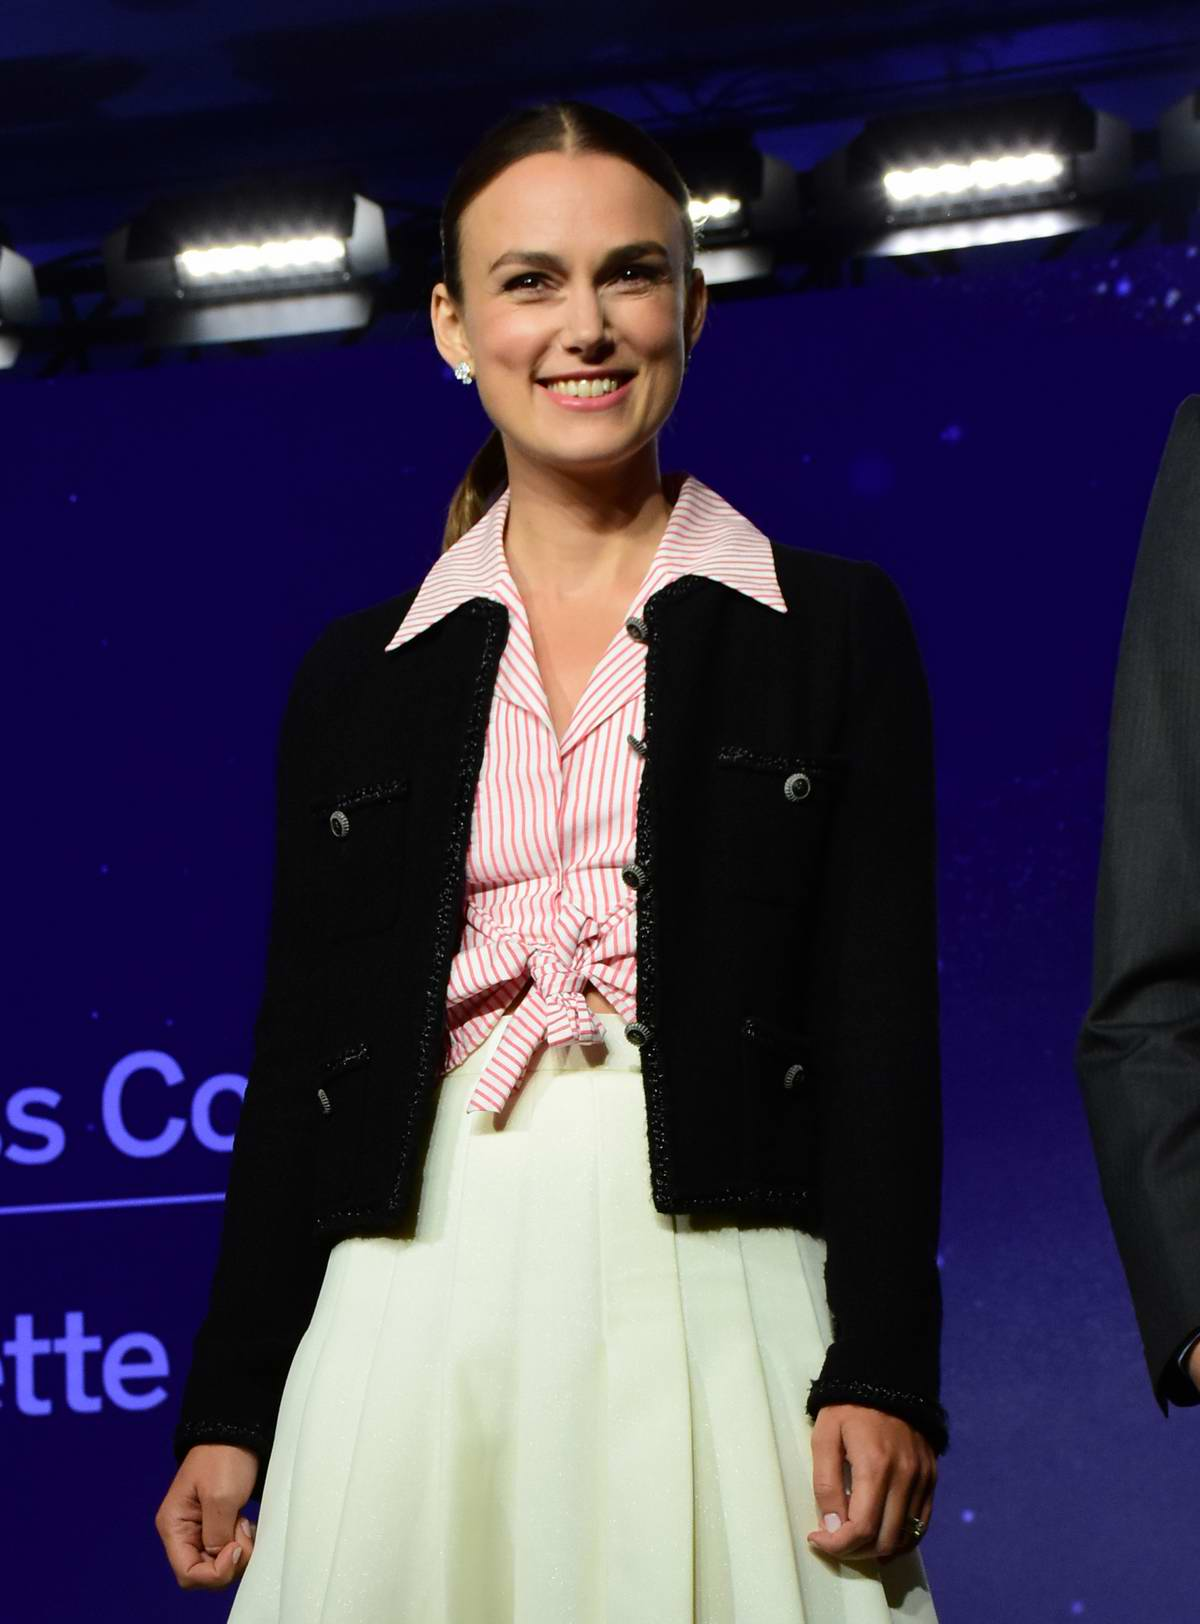 Keira Knightley attends the Colette press conference during the Toronto International Film Festival (TIFF 2018) in Toronto, Canada